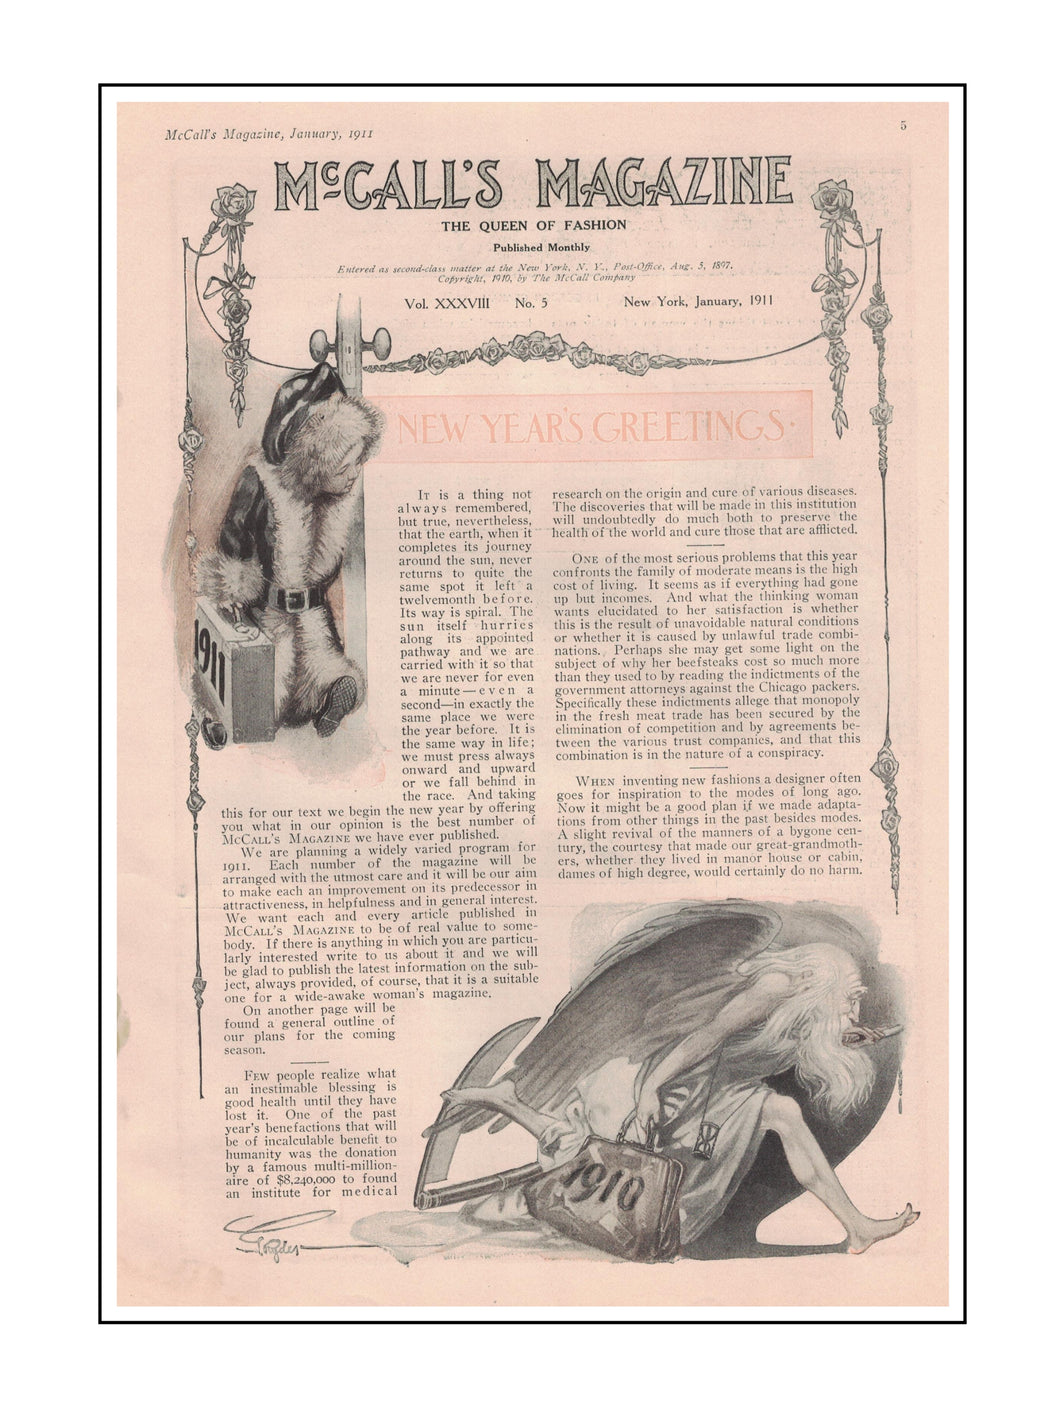 1911 McCall's Magazine New Year's Greeting Article